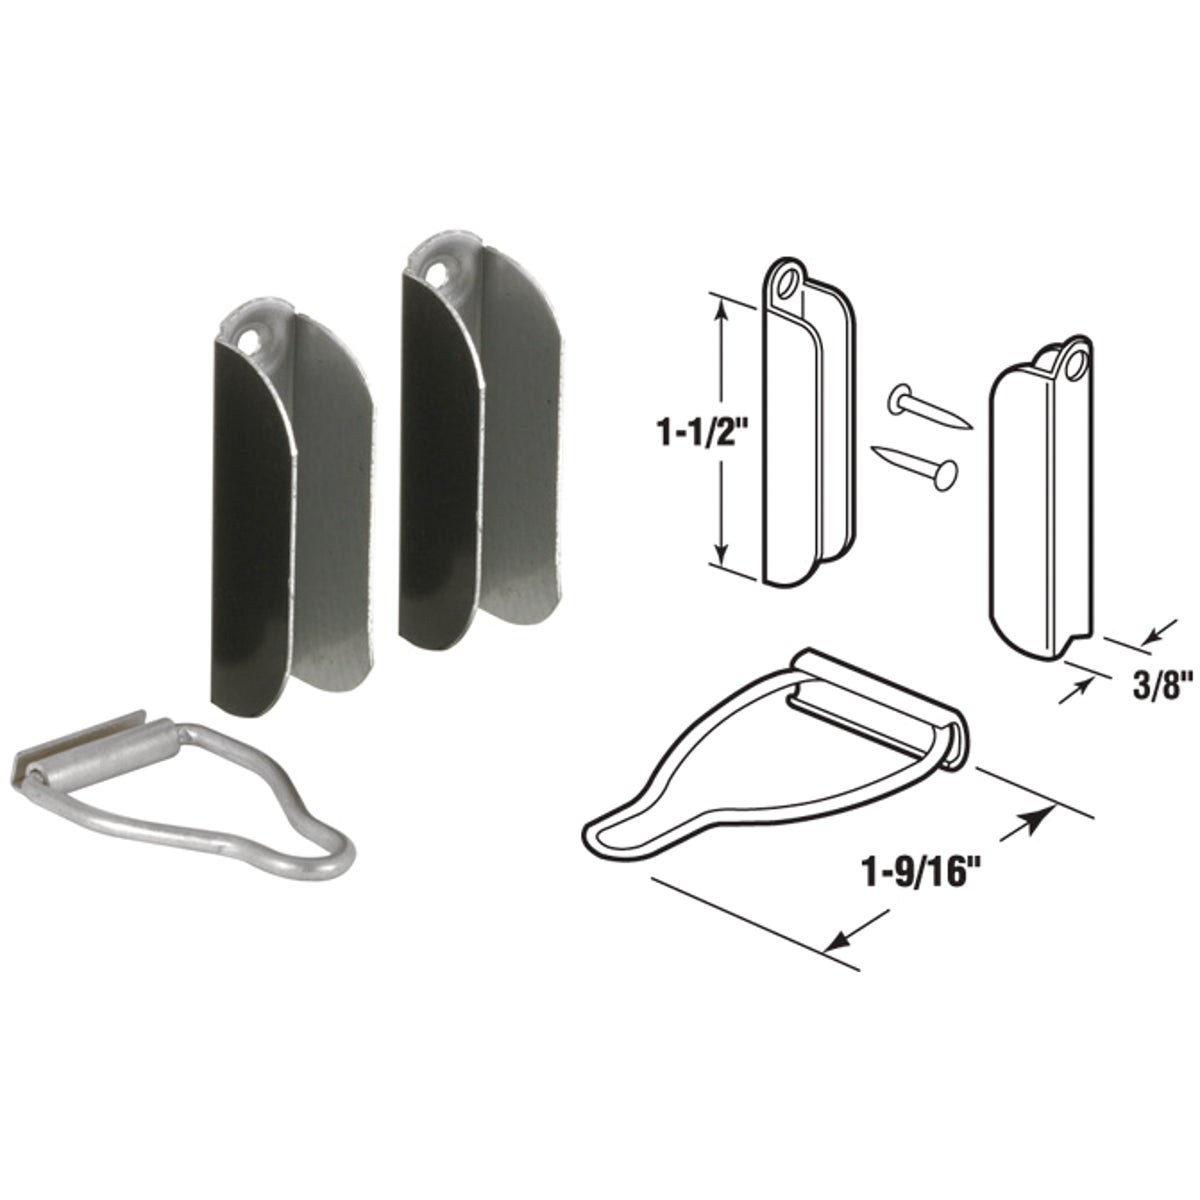 "2PK 3/8""BRN LATCH HANGER - PL8102 by Prime Line Products"